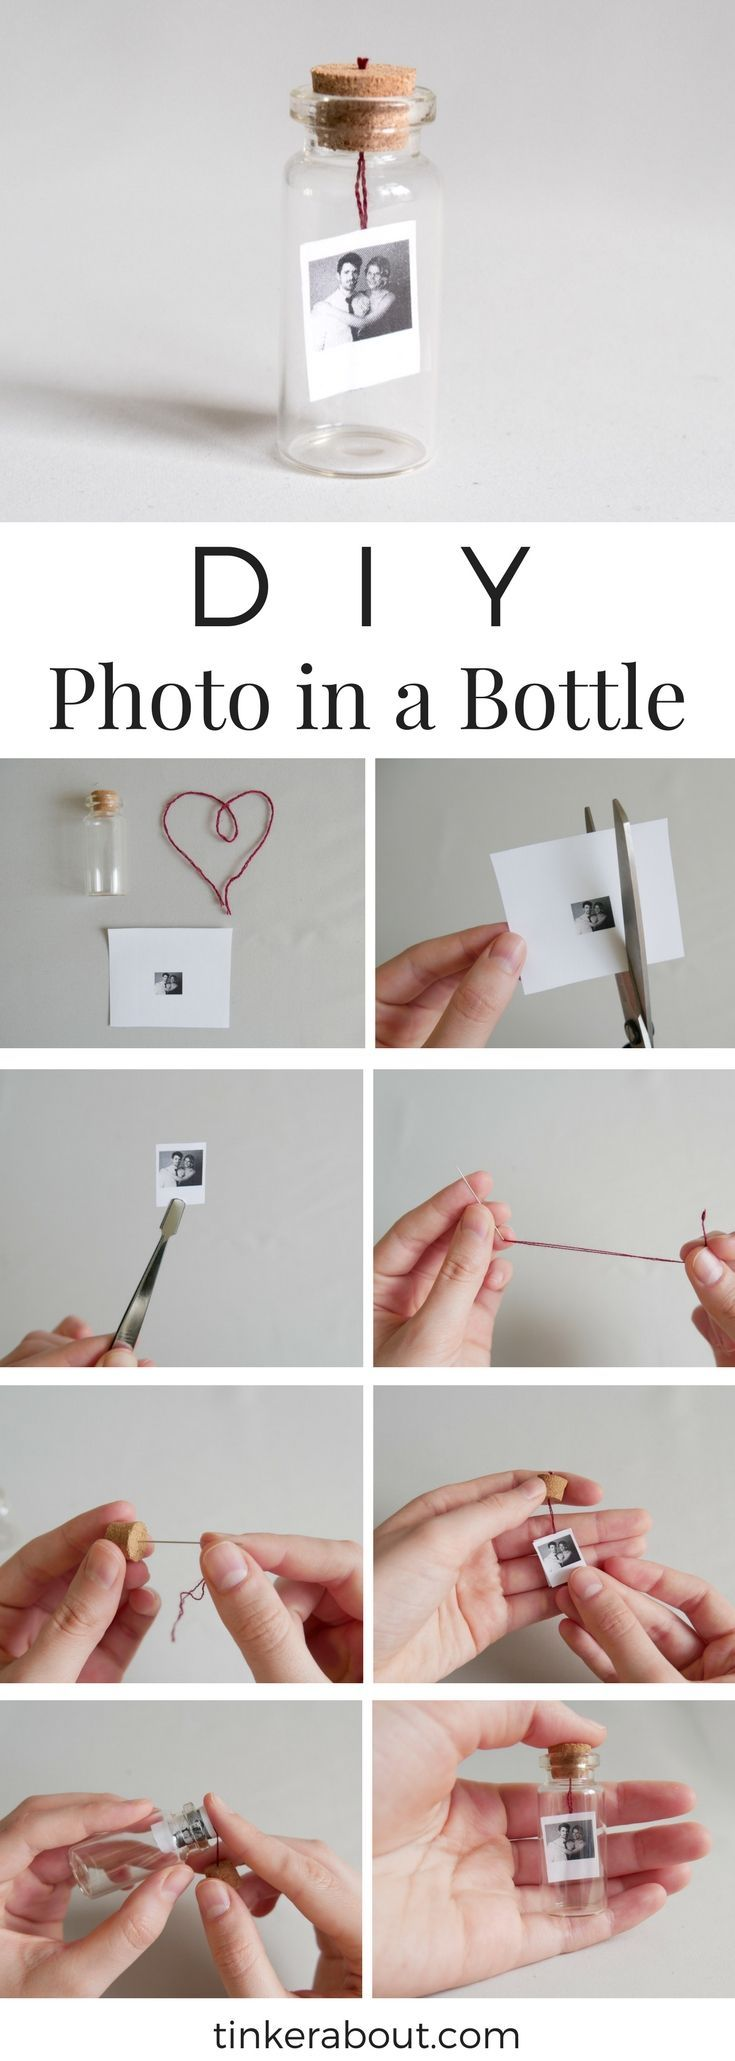 DIY Tiny PhotoMessage in a Bottle as Valentine39s Day Gift Idea DIY Tiny PhotoMessage in a Bottle as Valentines Day Gift Idea